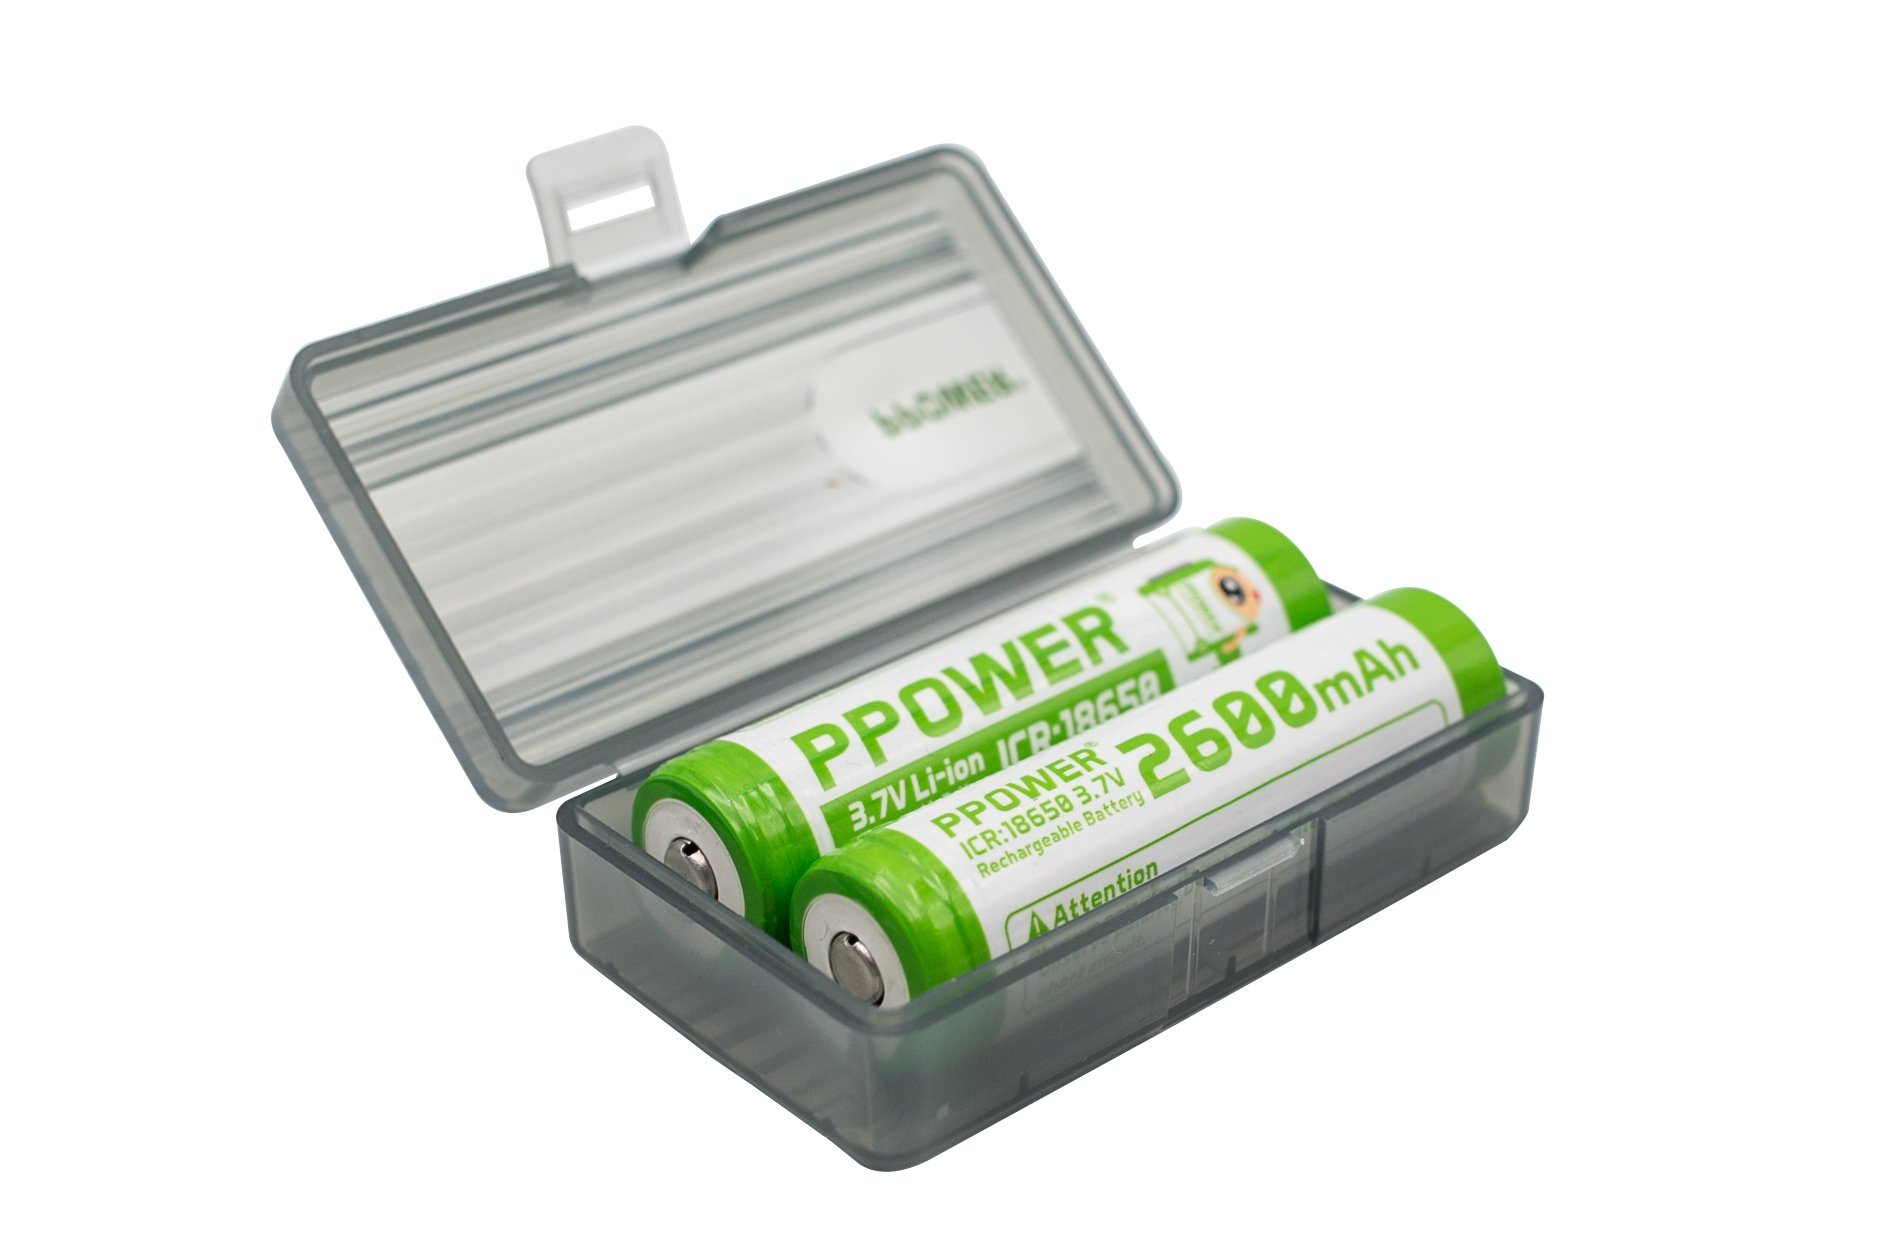 1X Ppower Grey Battery Box, Storage Box, for 4X cr123, RCR123A, RCR123 Batteries, Battery case (Batteries are not Included) P-Power